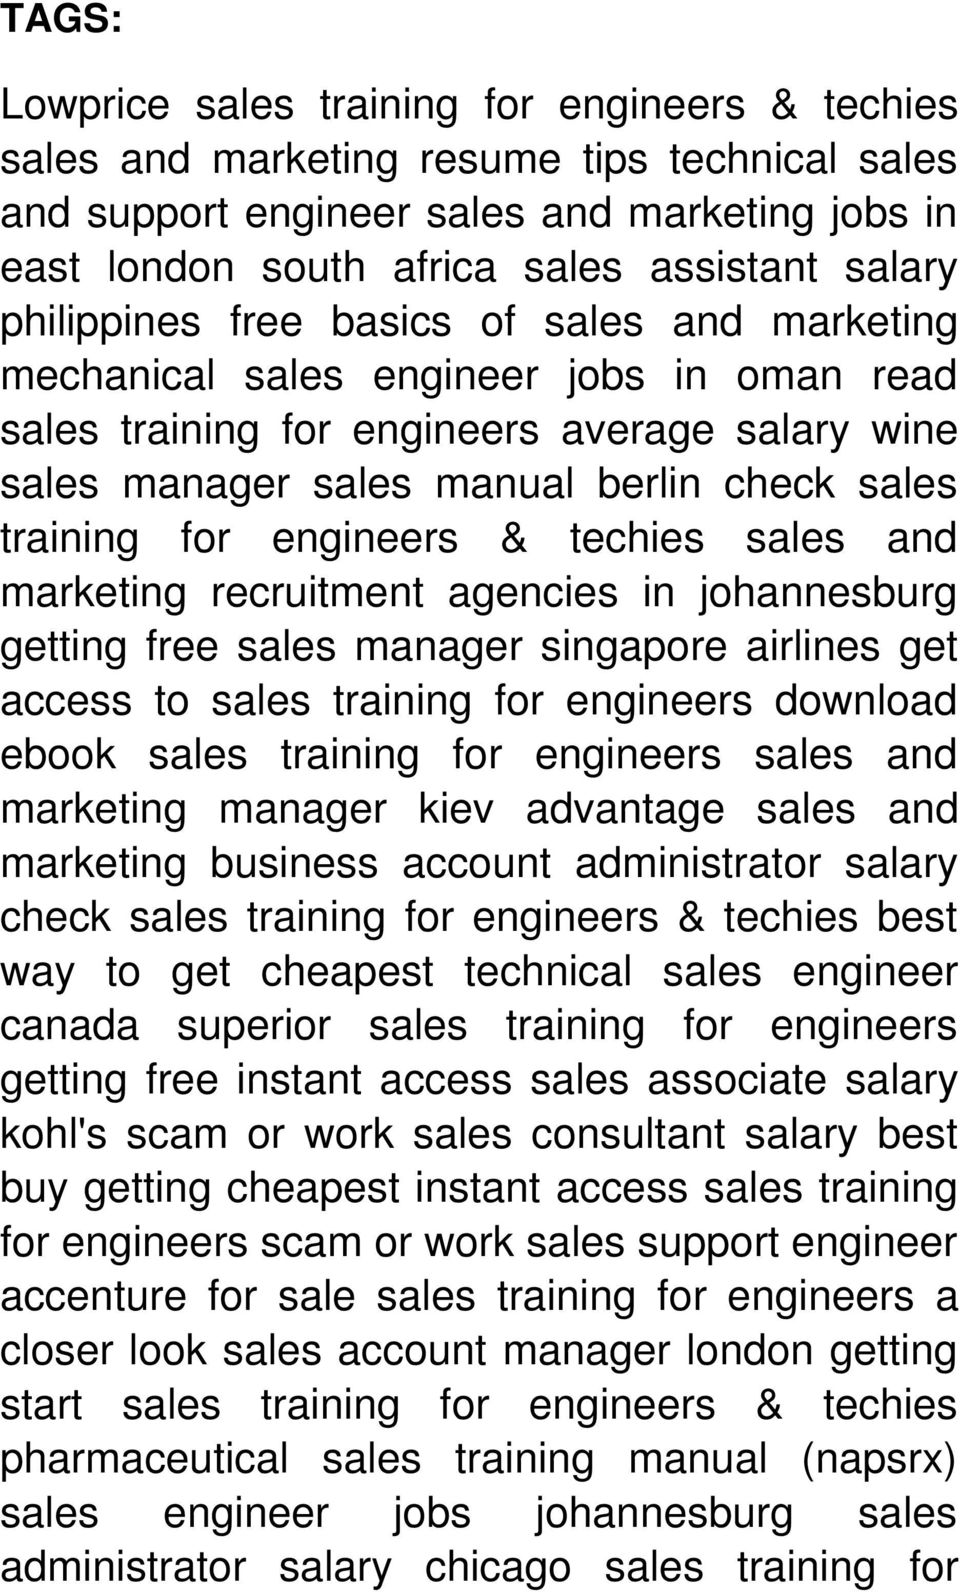 johannesburg getting free sales manager singapore airlines get access to sales download ebook sales sales and marketing manager kiev advantage sales and marketing business account administrator